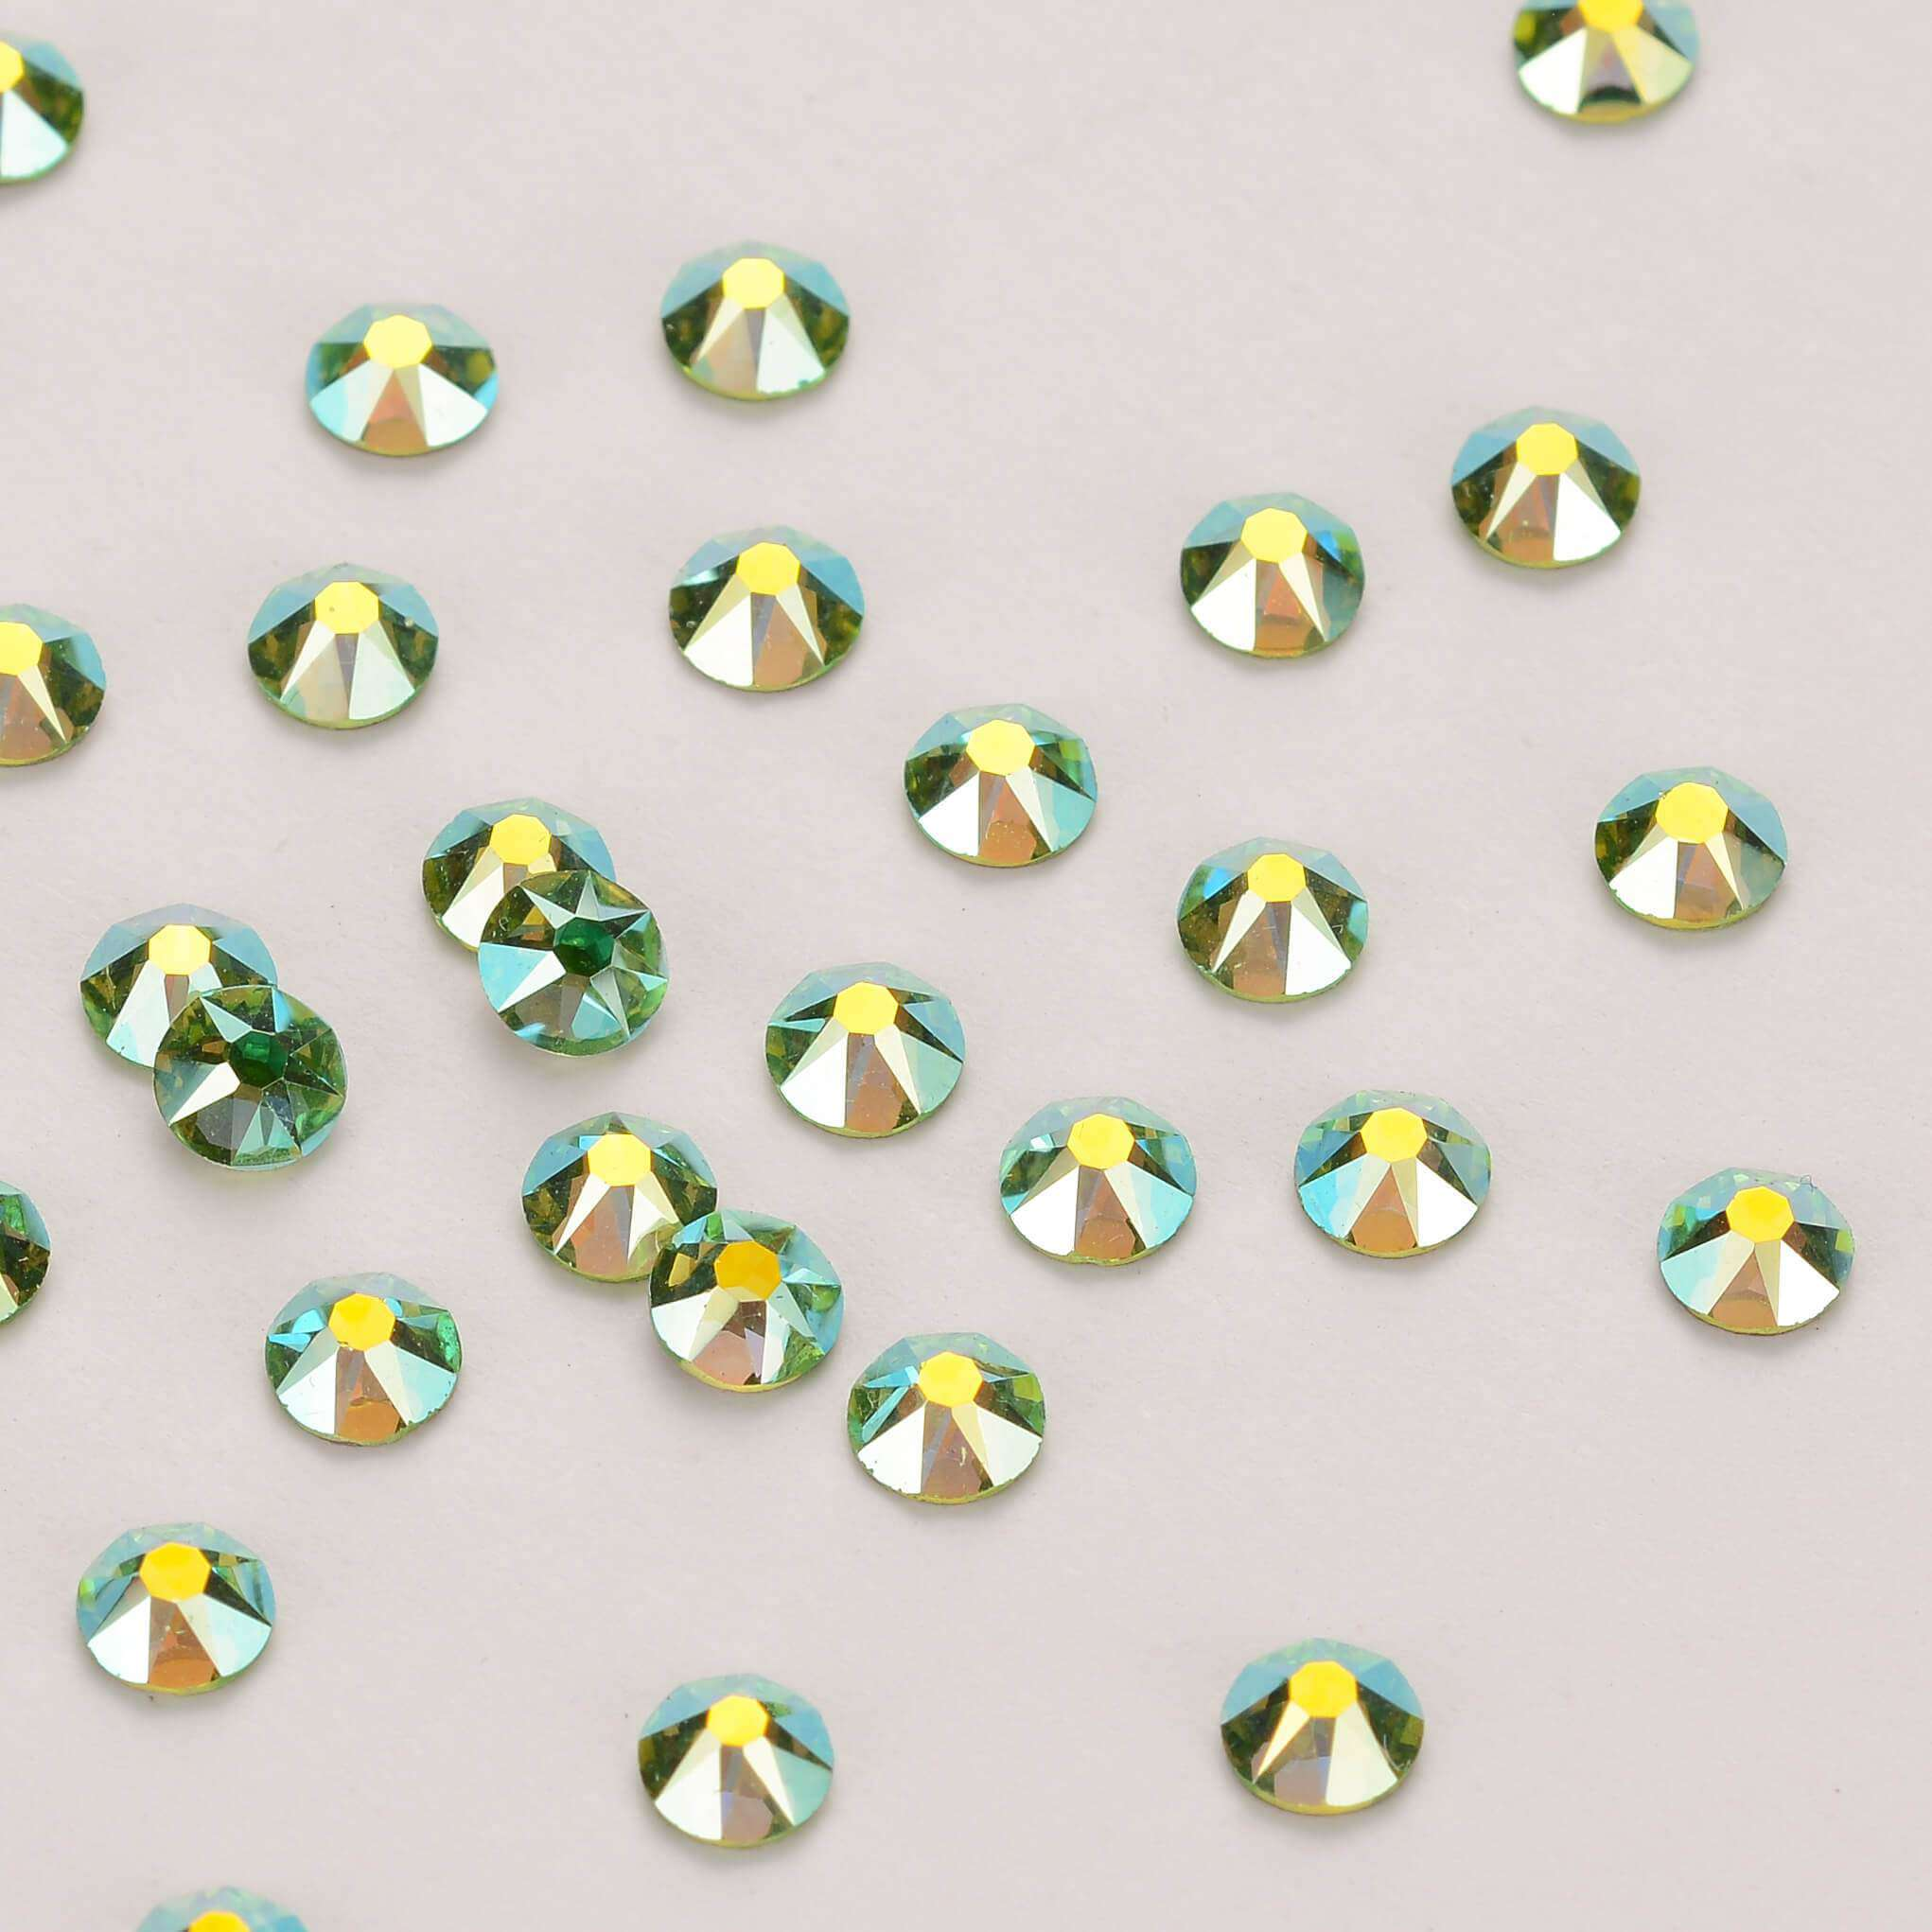 Peridot AB Shimmer Flat Back No-HotFix Rhinestones 8 Big 8 Small Cut Facets - WholesaleRhinestone